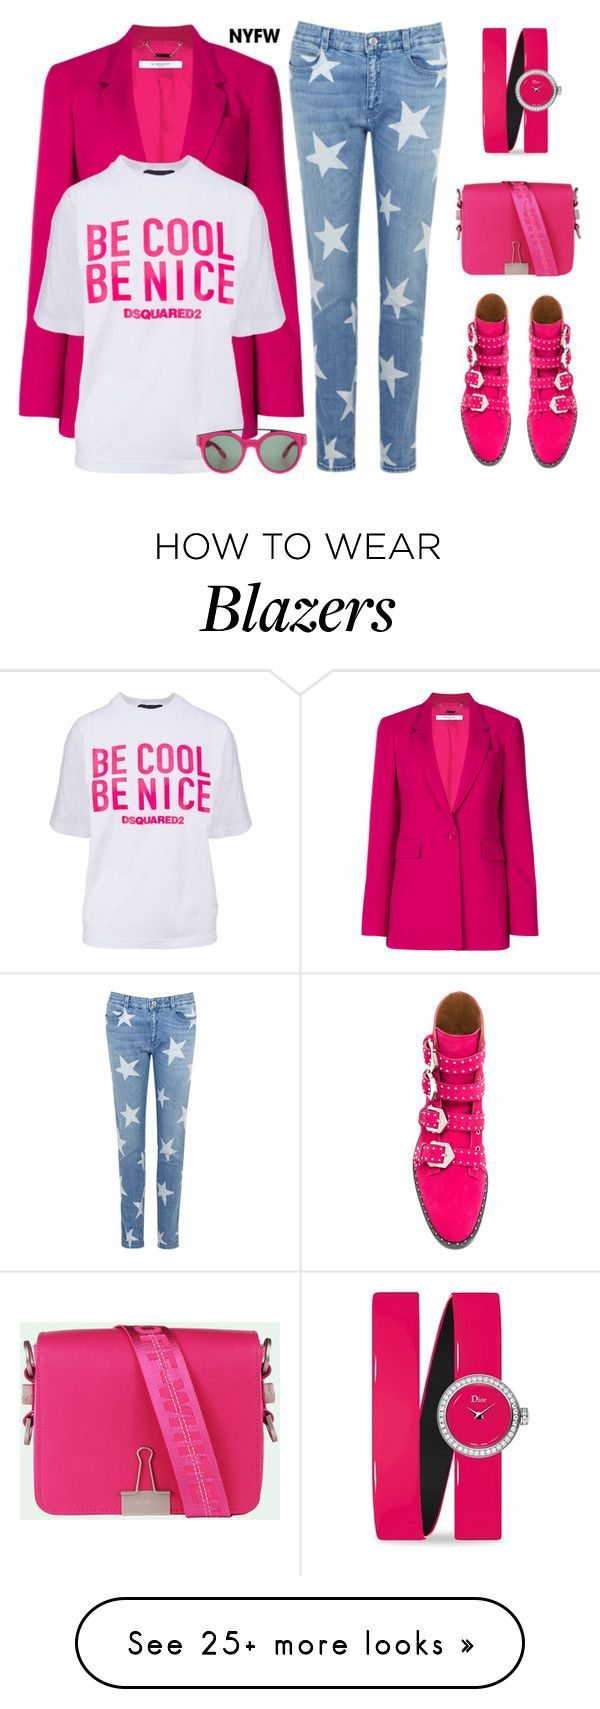 """""""#NYFWHotPink #ContestEntry"""" by fainasanders on Polyvore featuring Givenchy, Dsquared2, STELLA McCARTNEY, Christian Dior, contestentry and NYFWHotPink"""